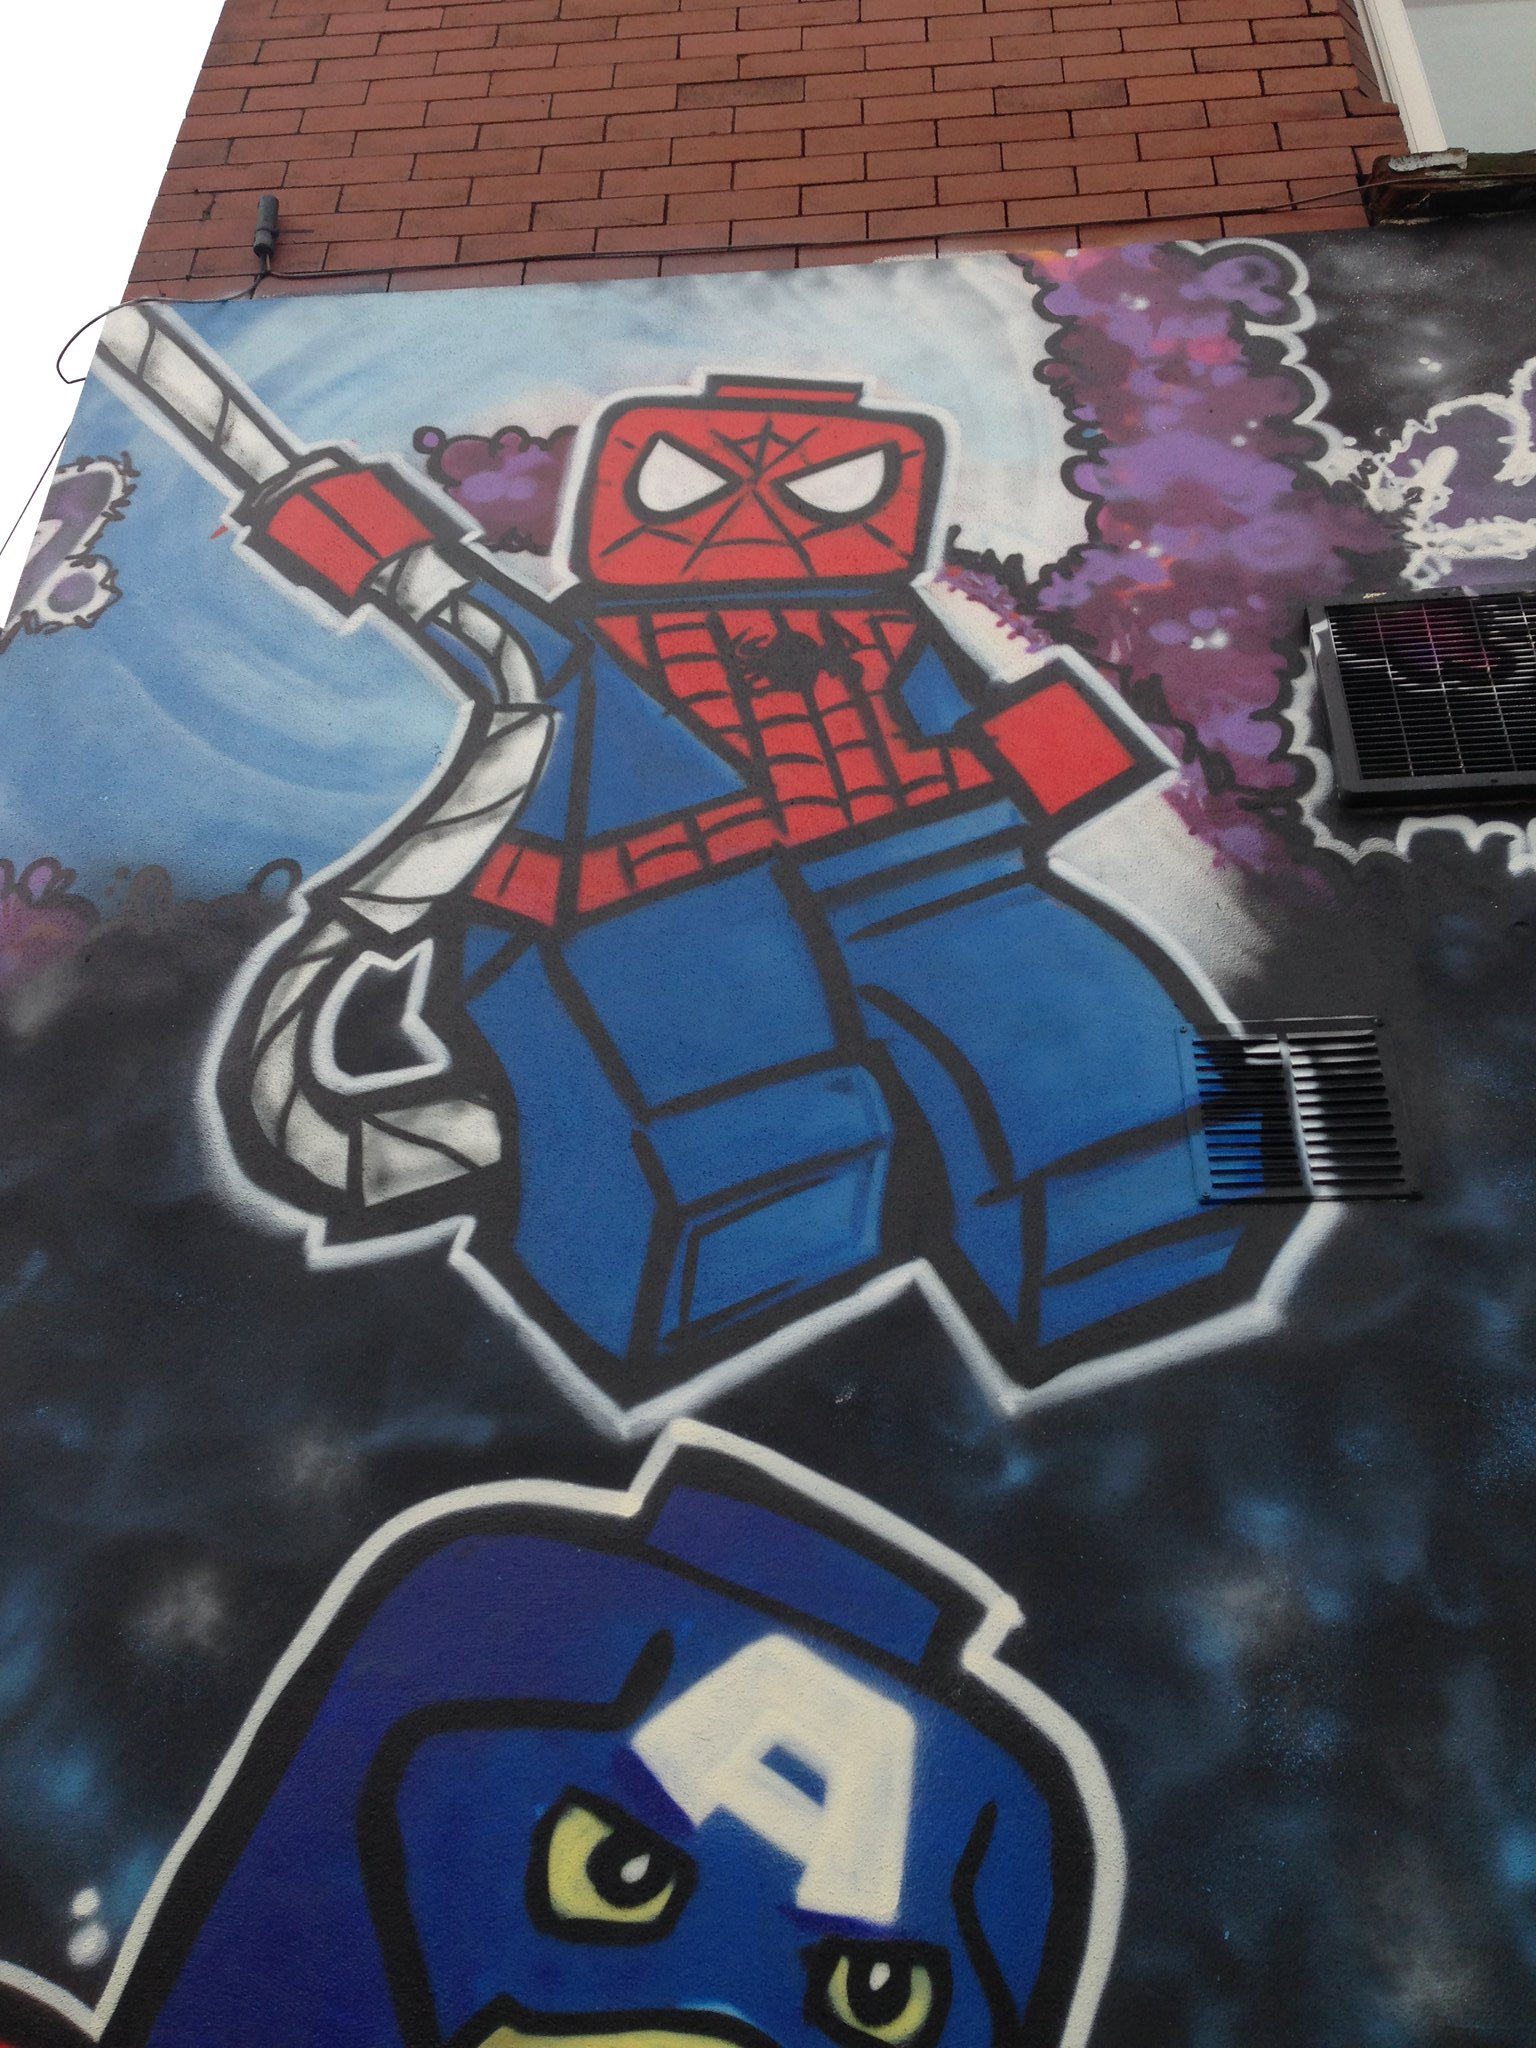 Marvel Lego Spider-Man street art, Blackpool, by Dominic Carlyle